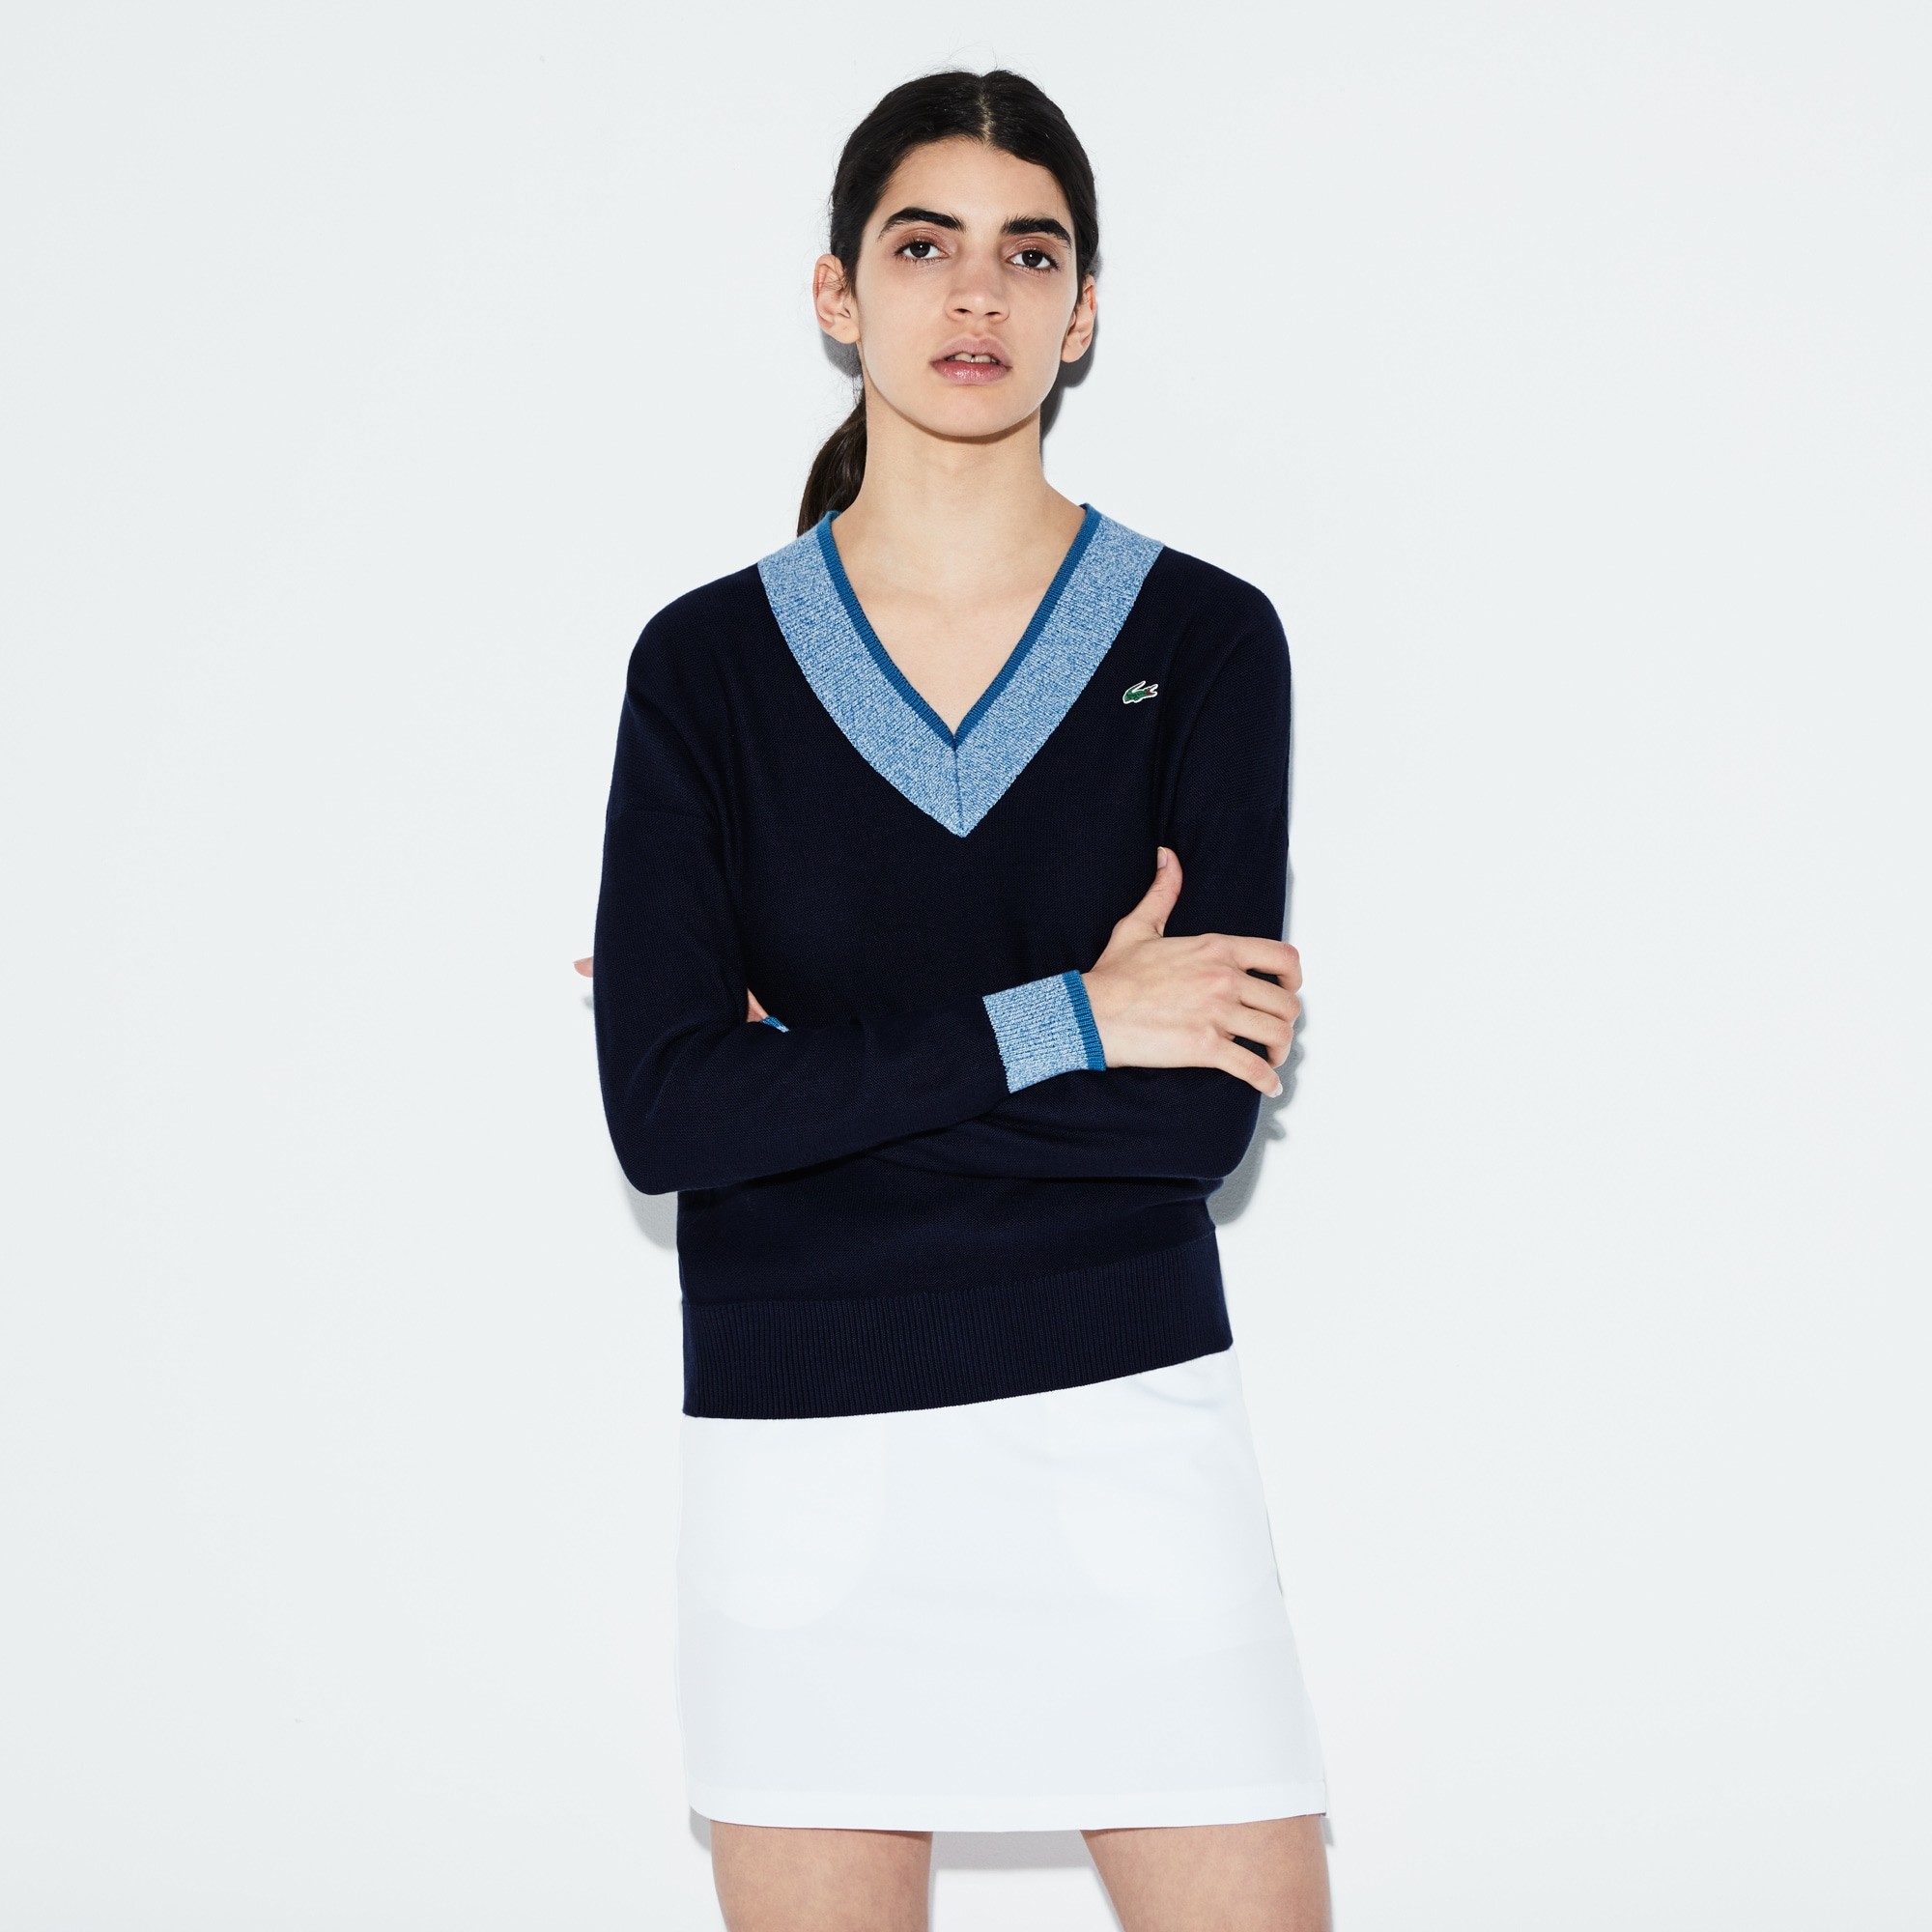 Women's SPORT V-neck Contrast Finish Jersey Golf Sweater